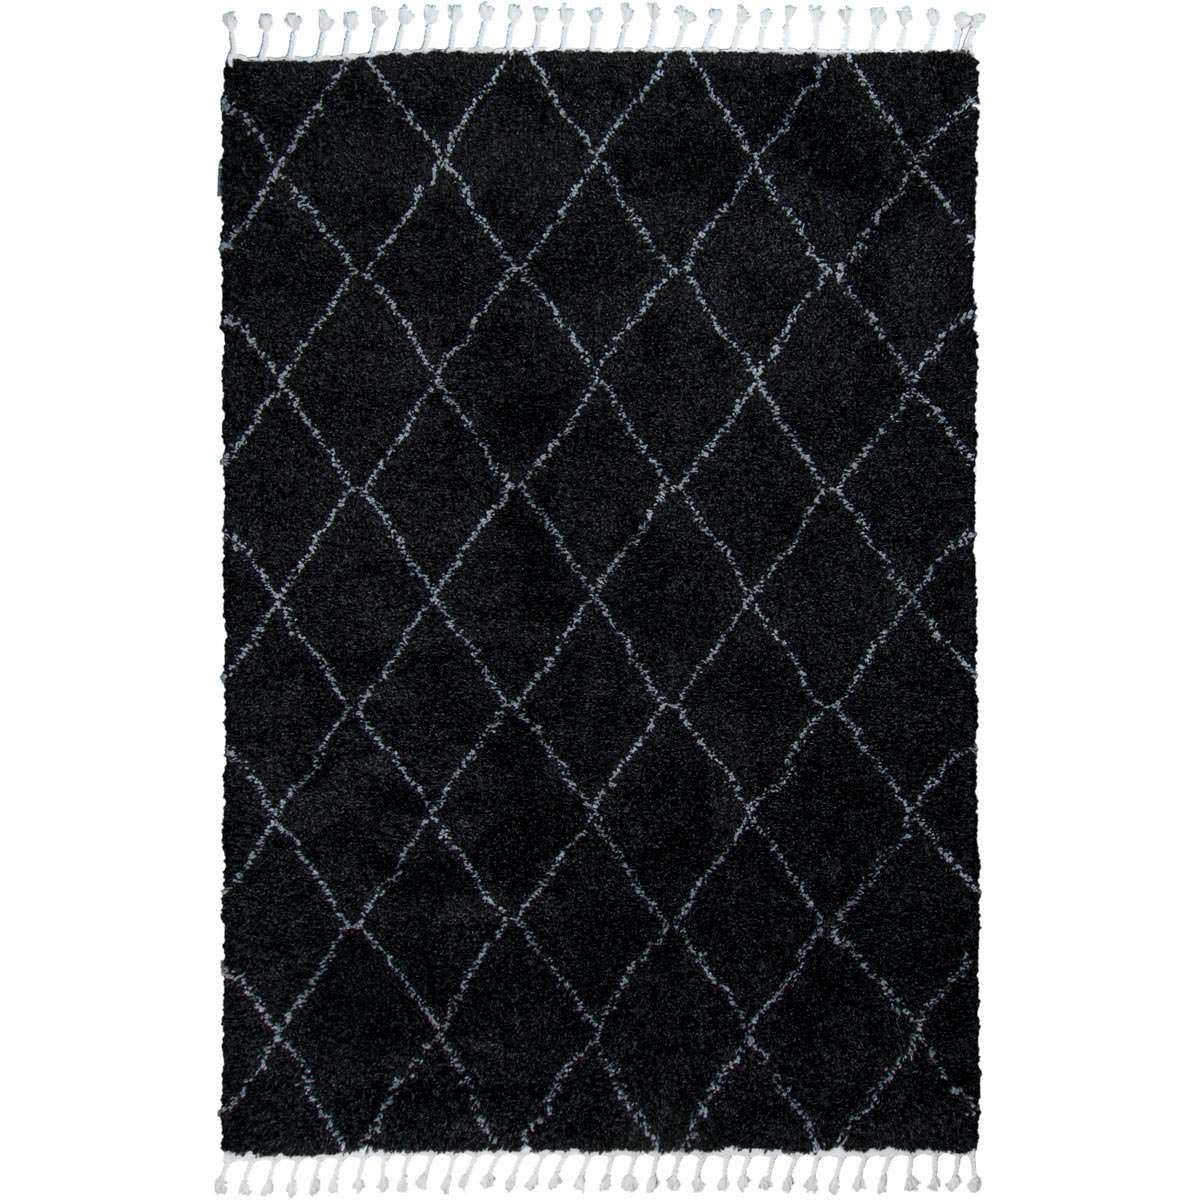 Casablanka Rug 04 Black/White 1